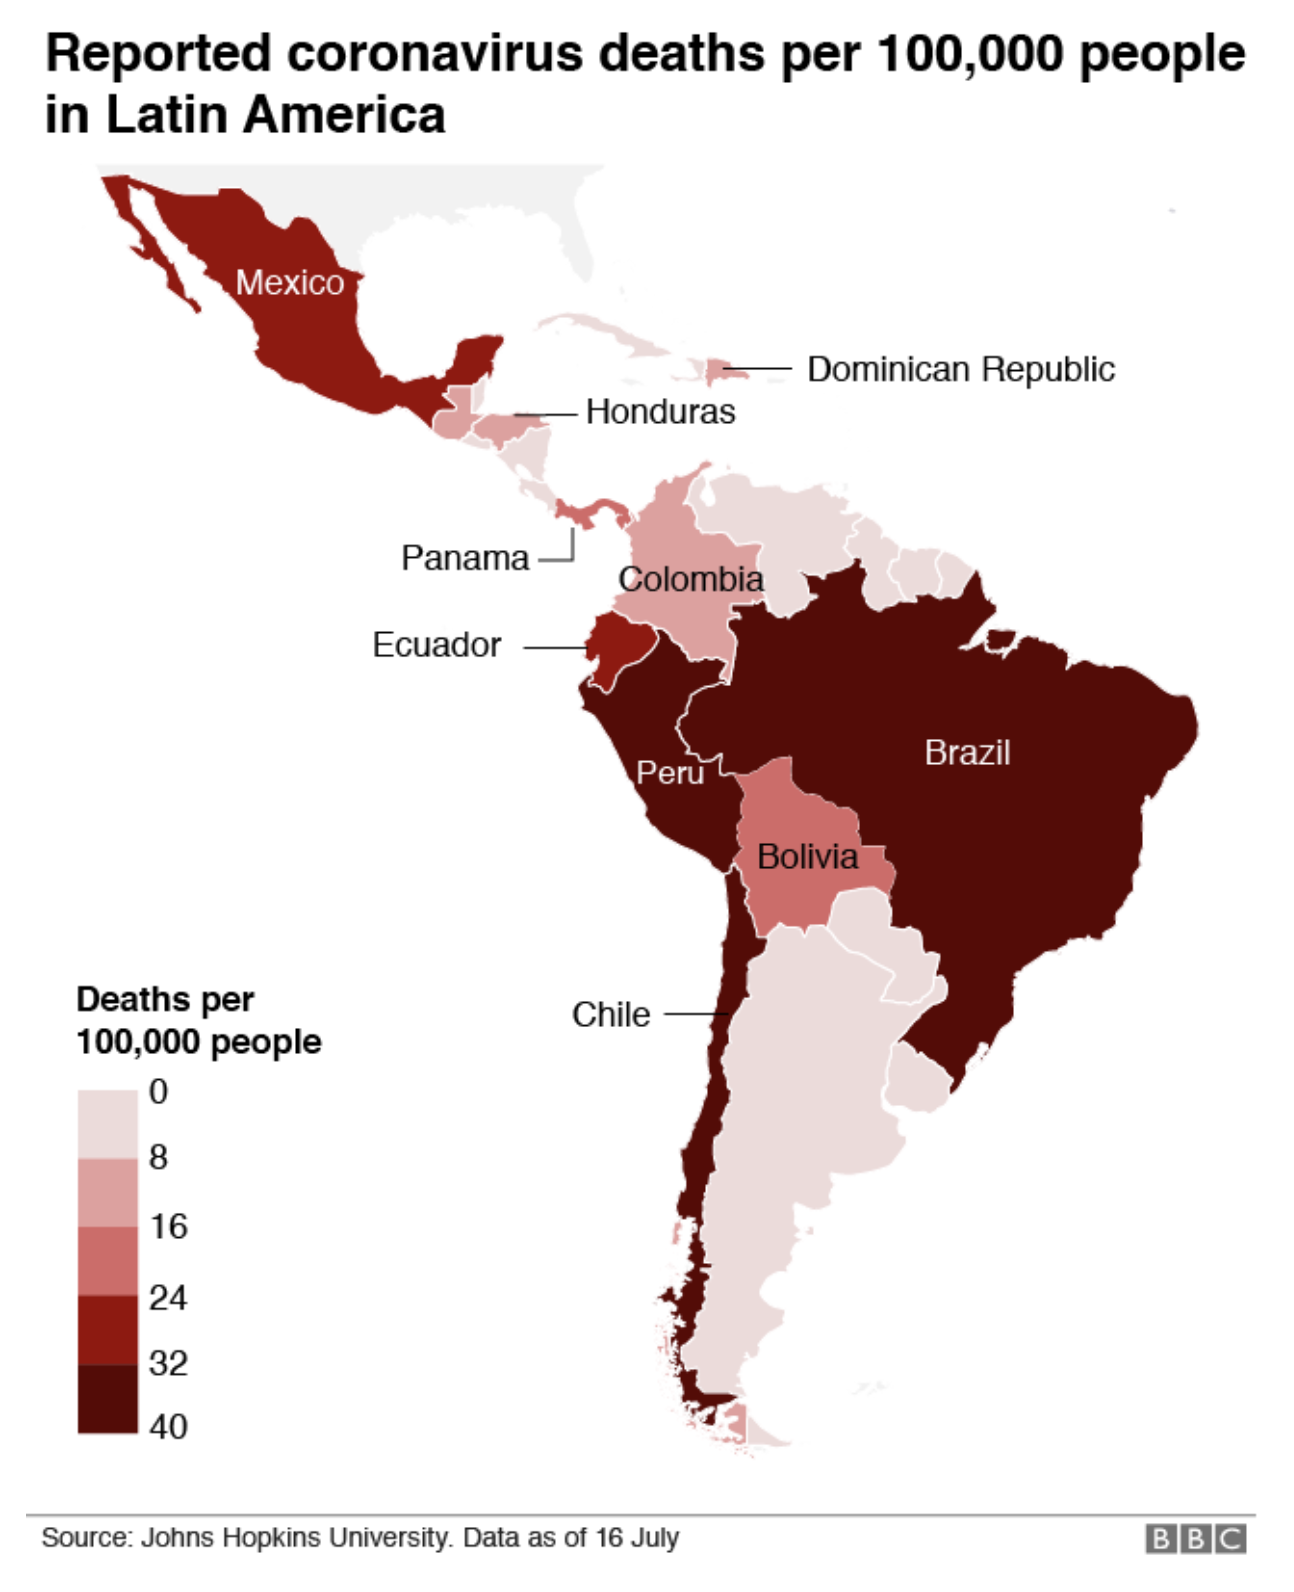 COVID-19 mortality rates across Latin America, as of 16 July